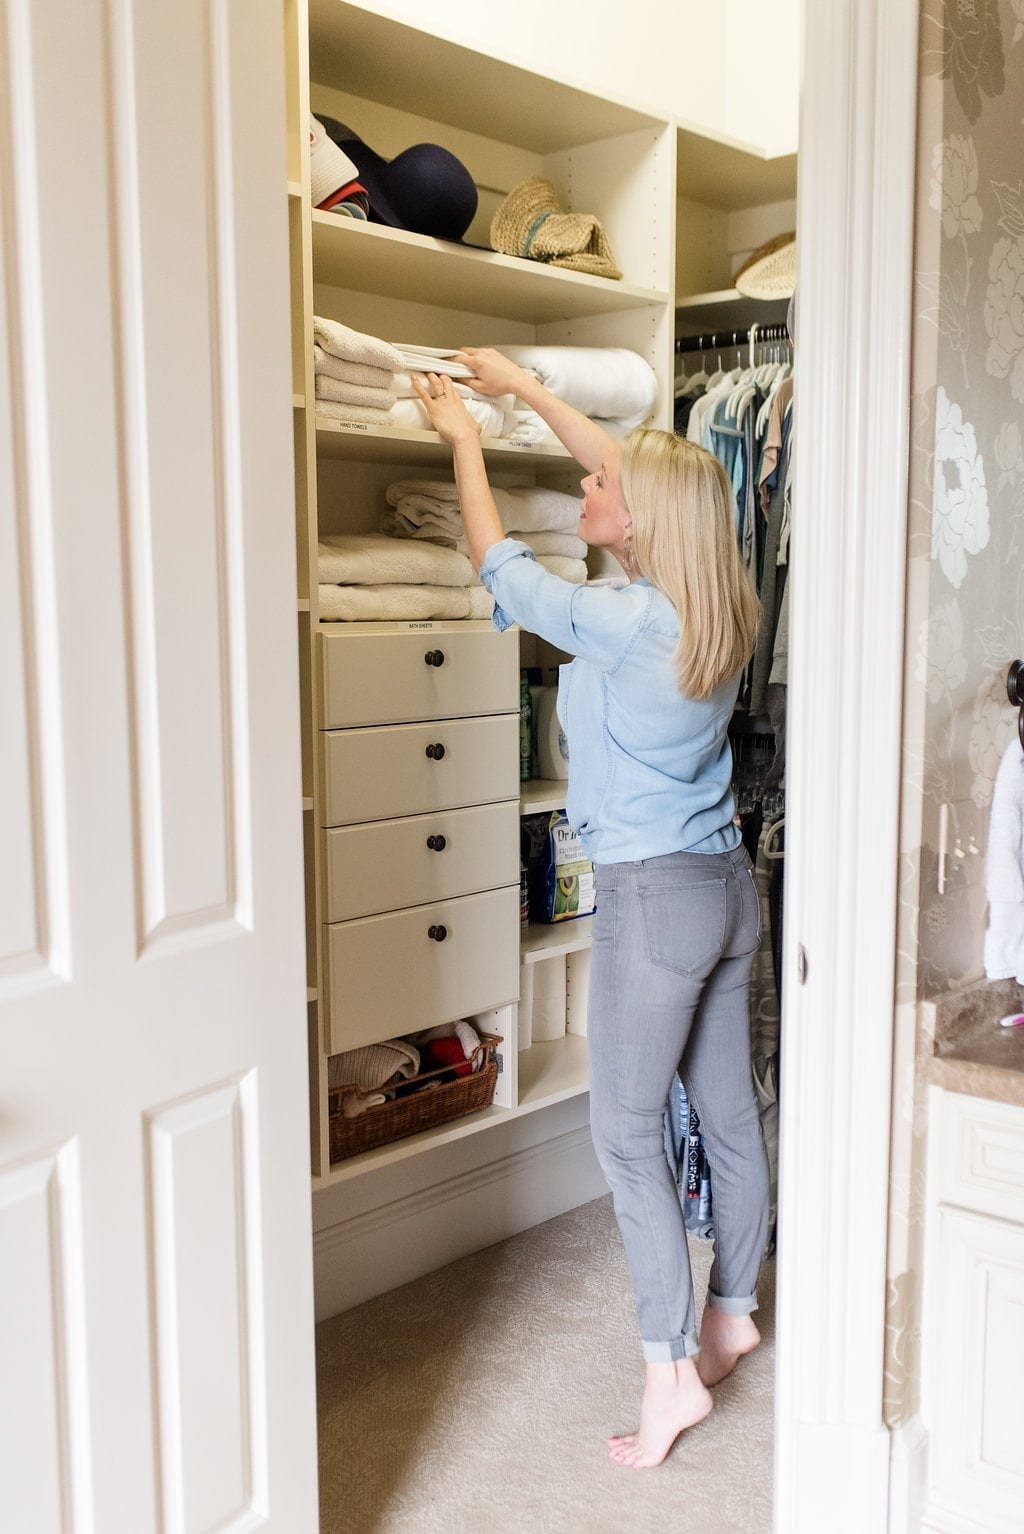 House organizing tricks and tips. How to keep your house clutter free.